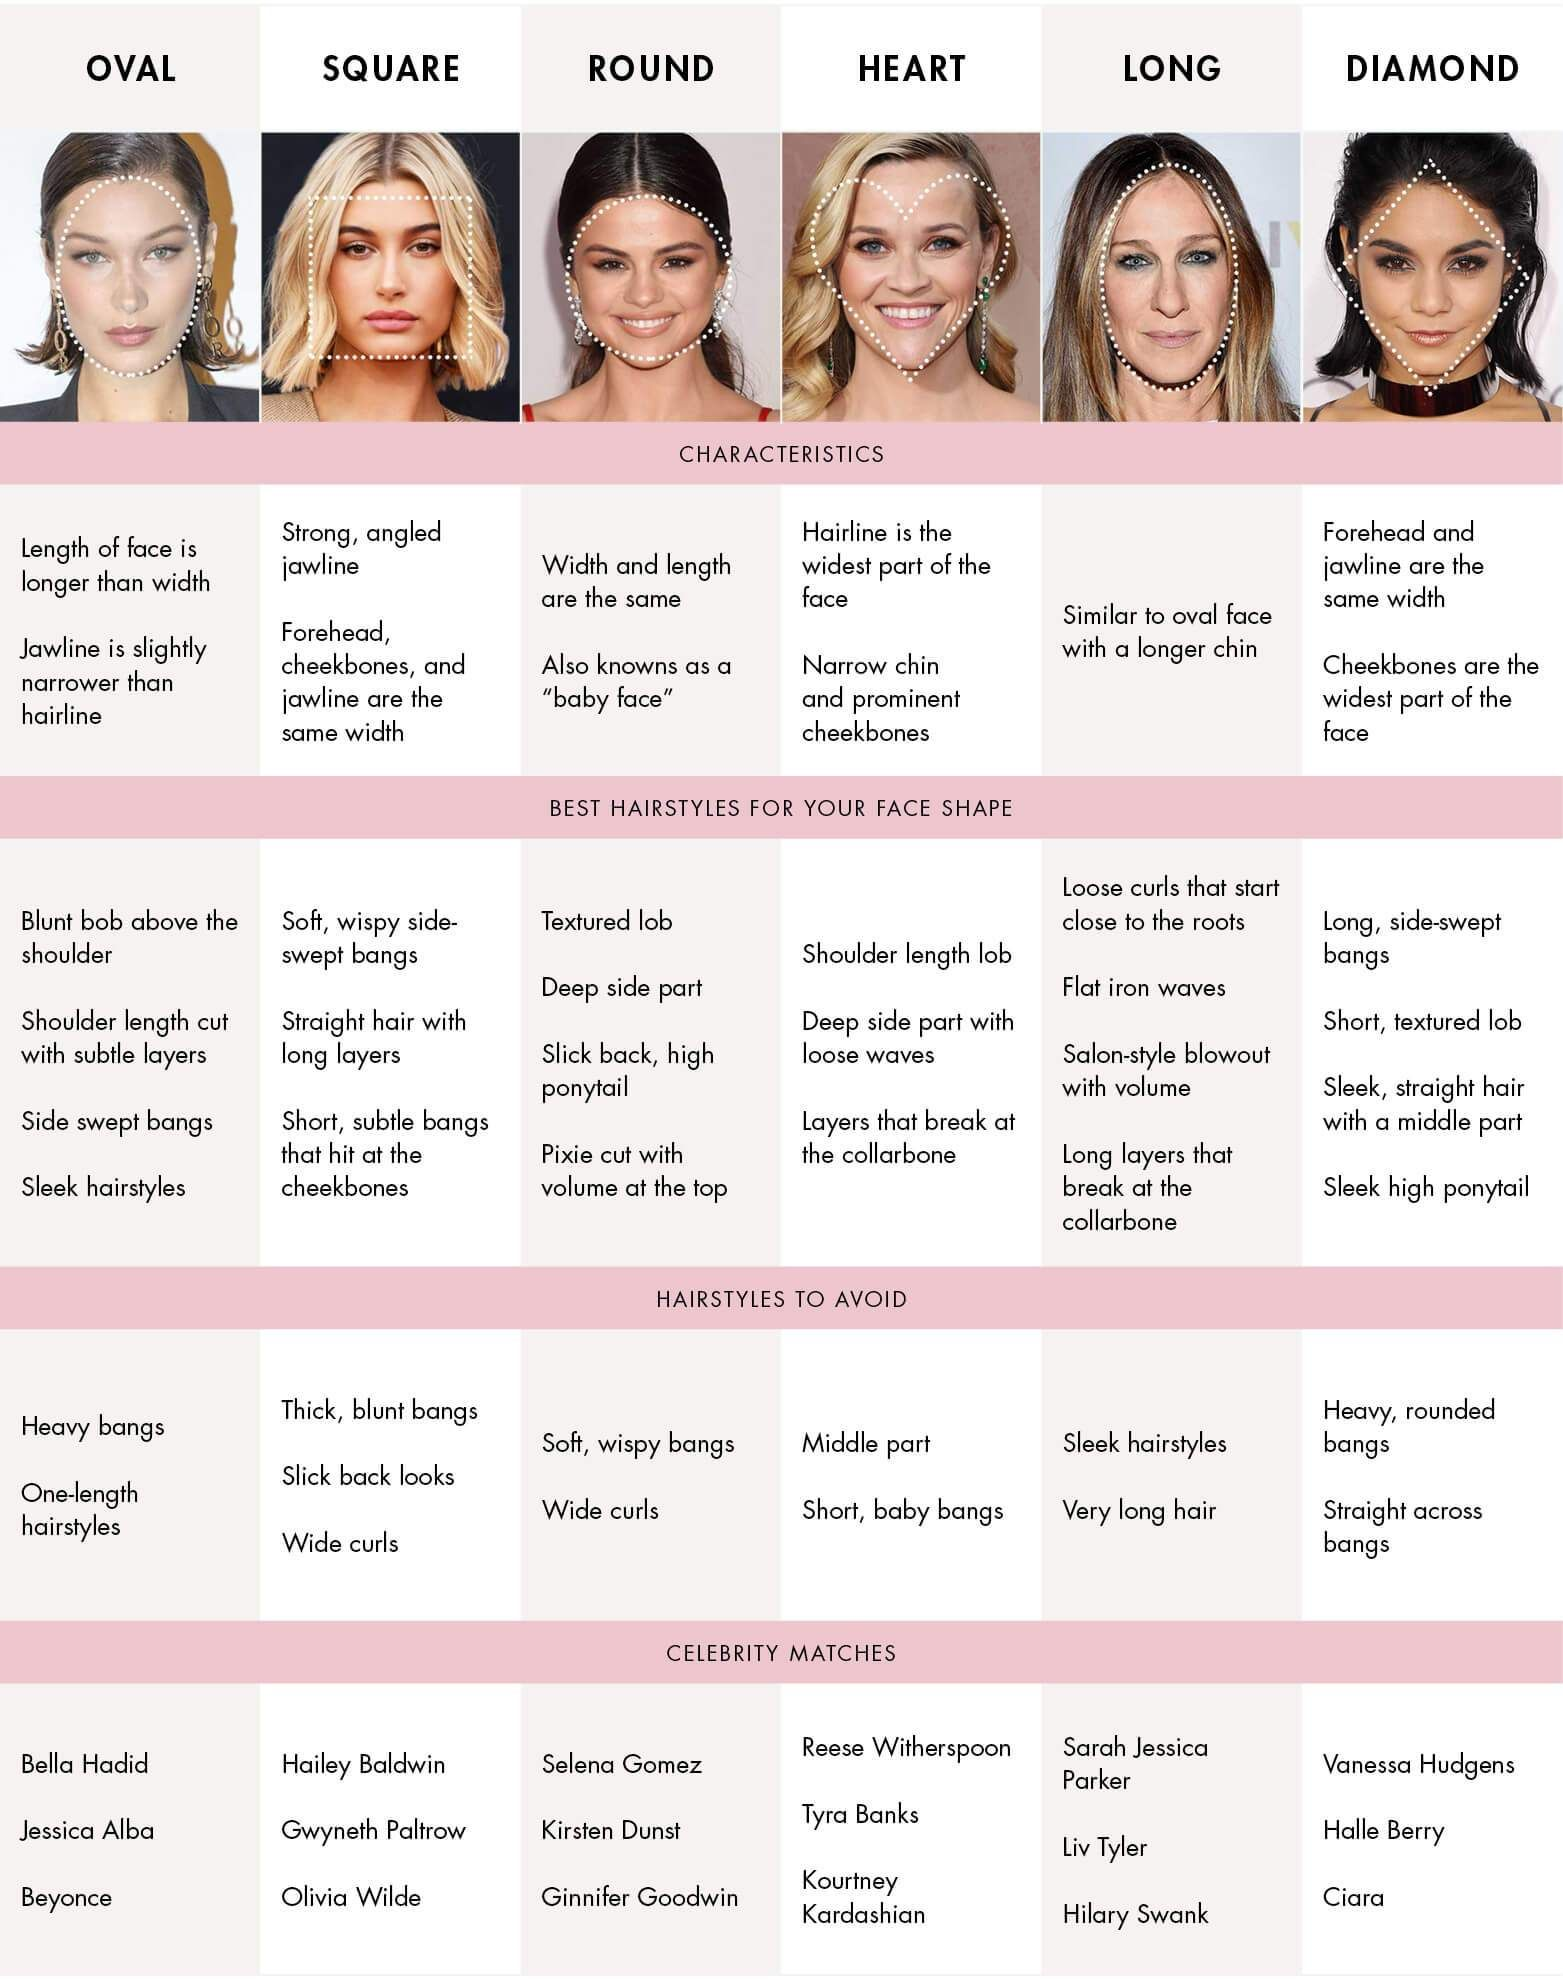 best hairstyles for different face shapes | hair | oval face